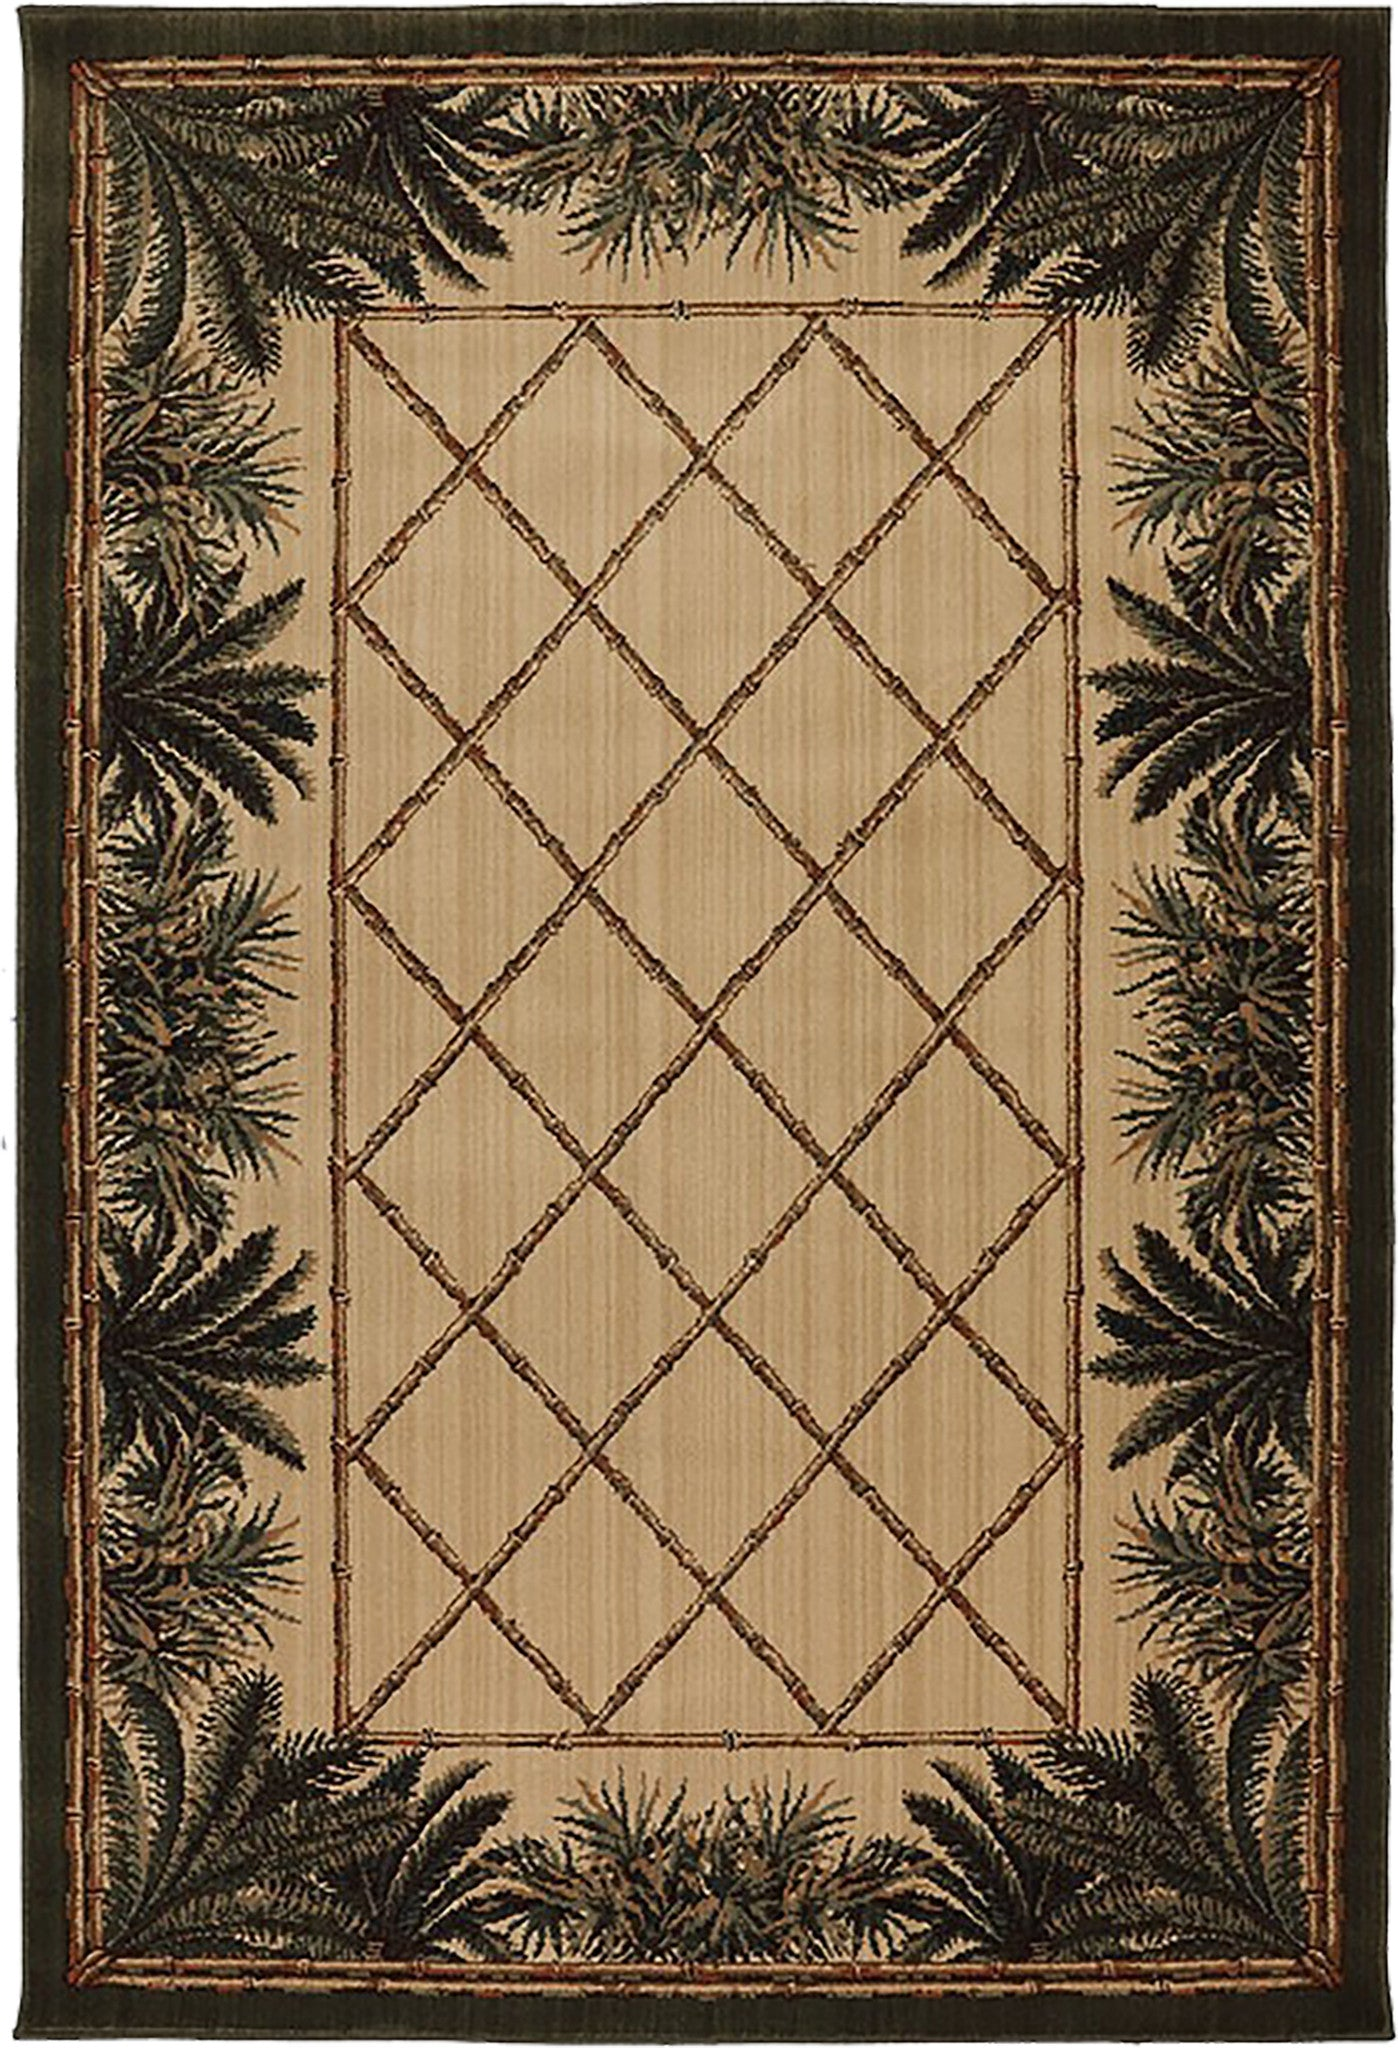 Mayberry Harbor Bay HB90439-Bahama Breeze Multi Area Rug